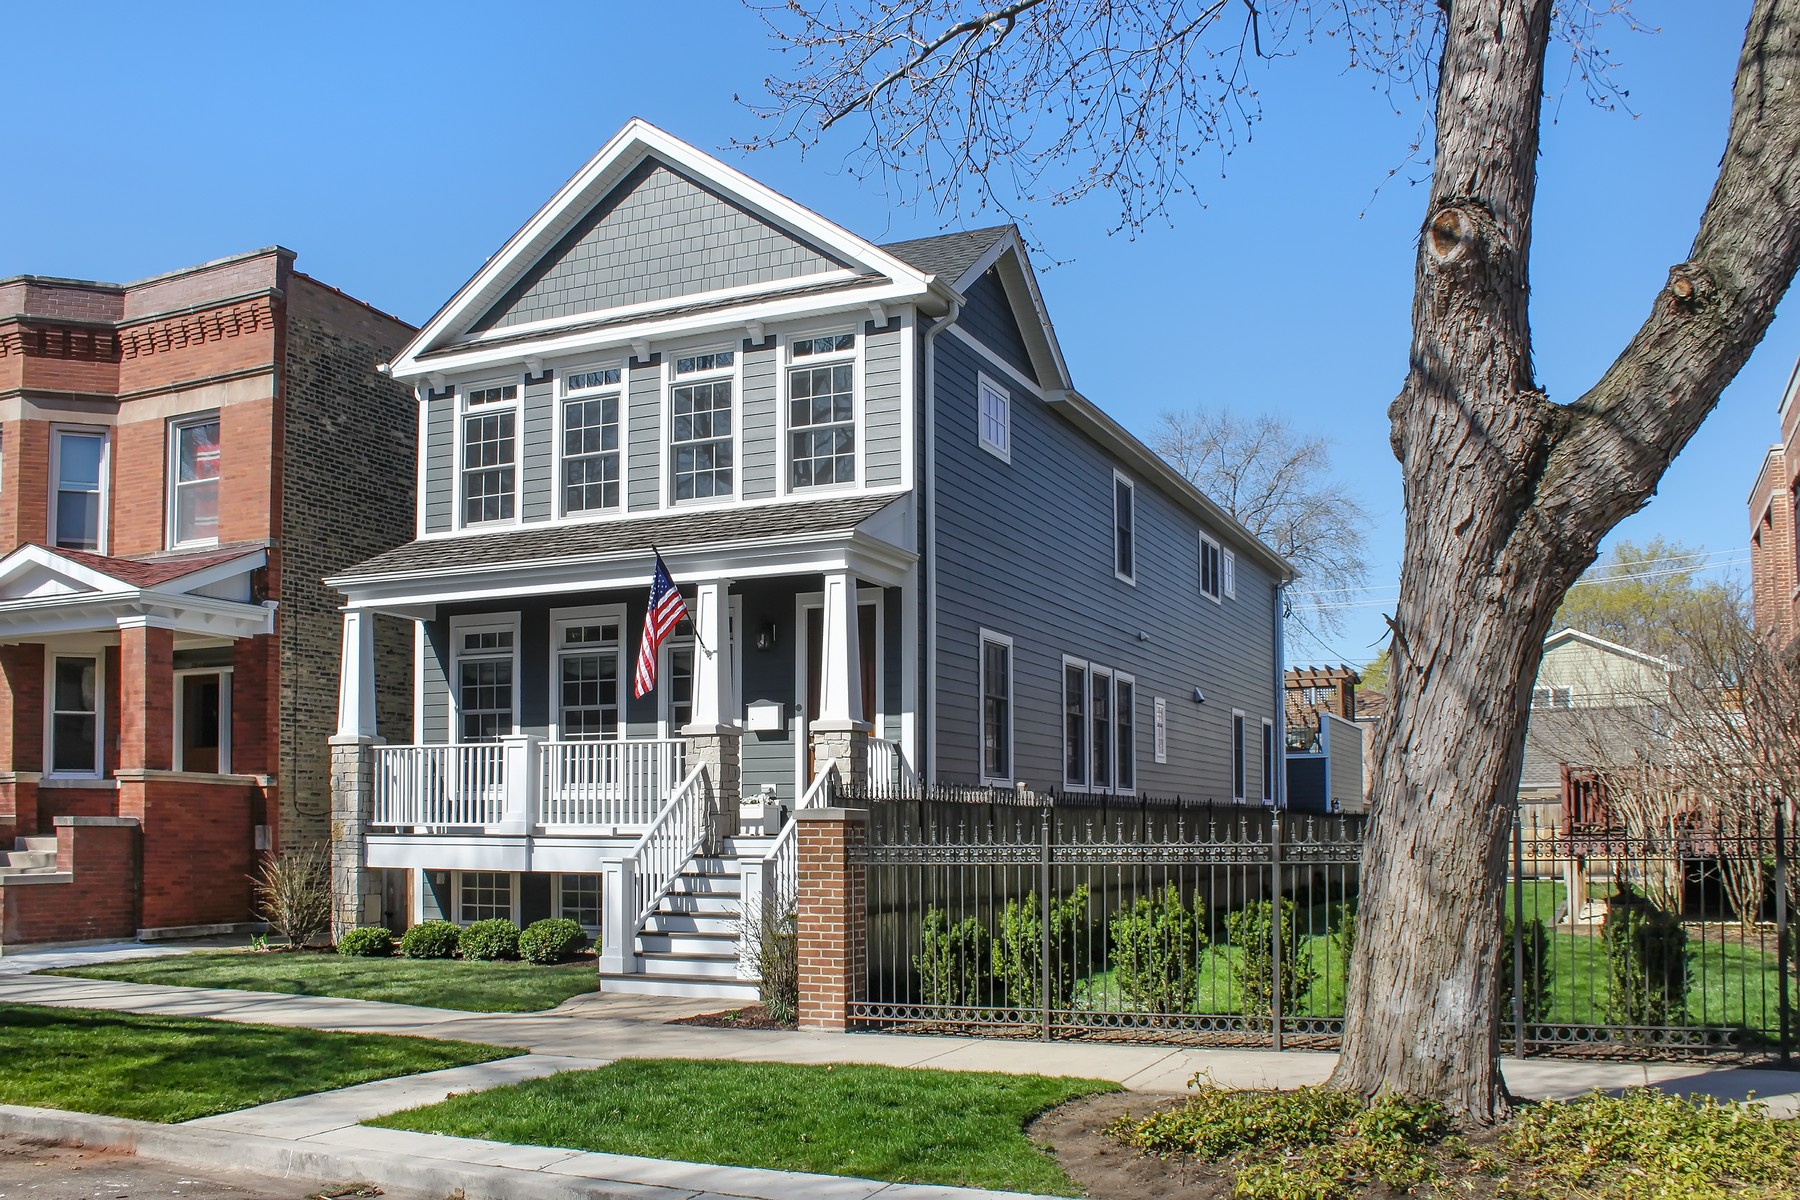 Single Family Home for Sale at Incredible Construction 3848 N Bell Avenue North Center, Chicago, Illinois, 60618 United States